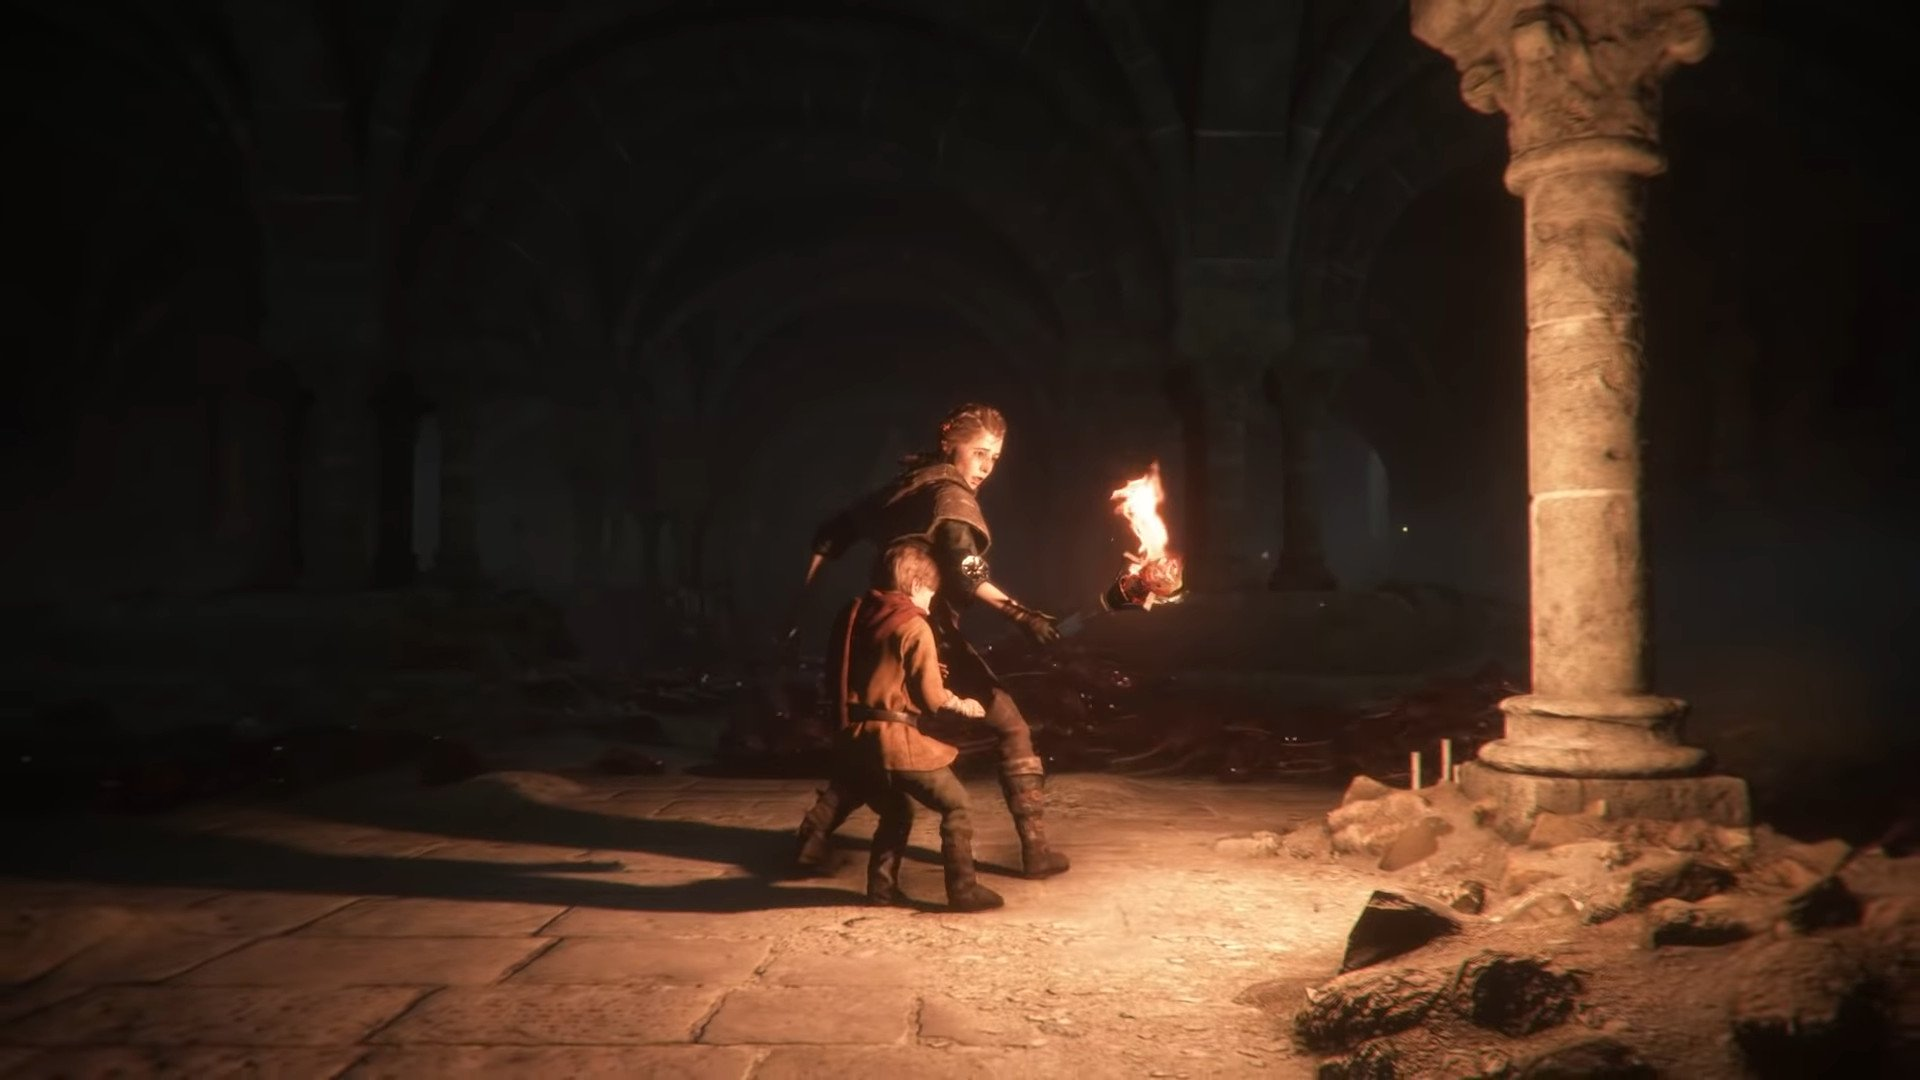 A plague tale: innocence overview gameplay trailer